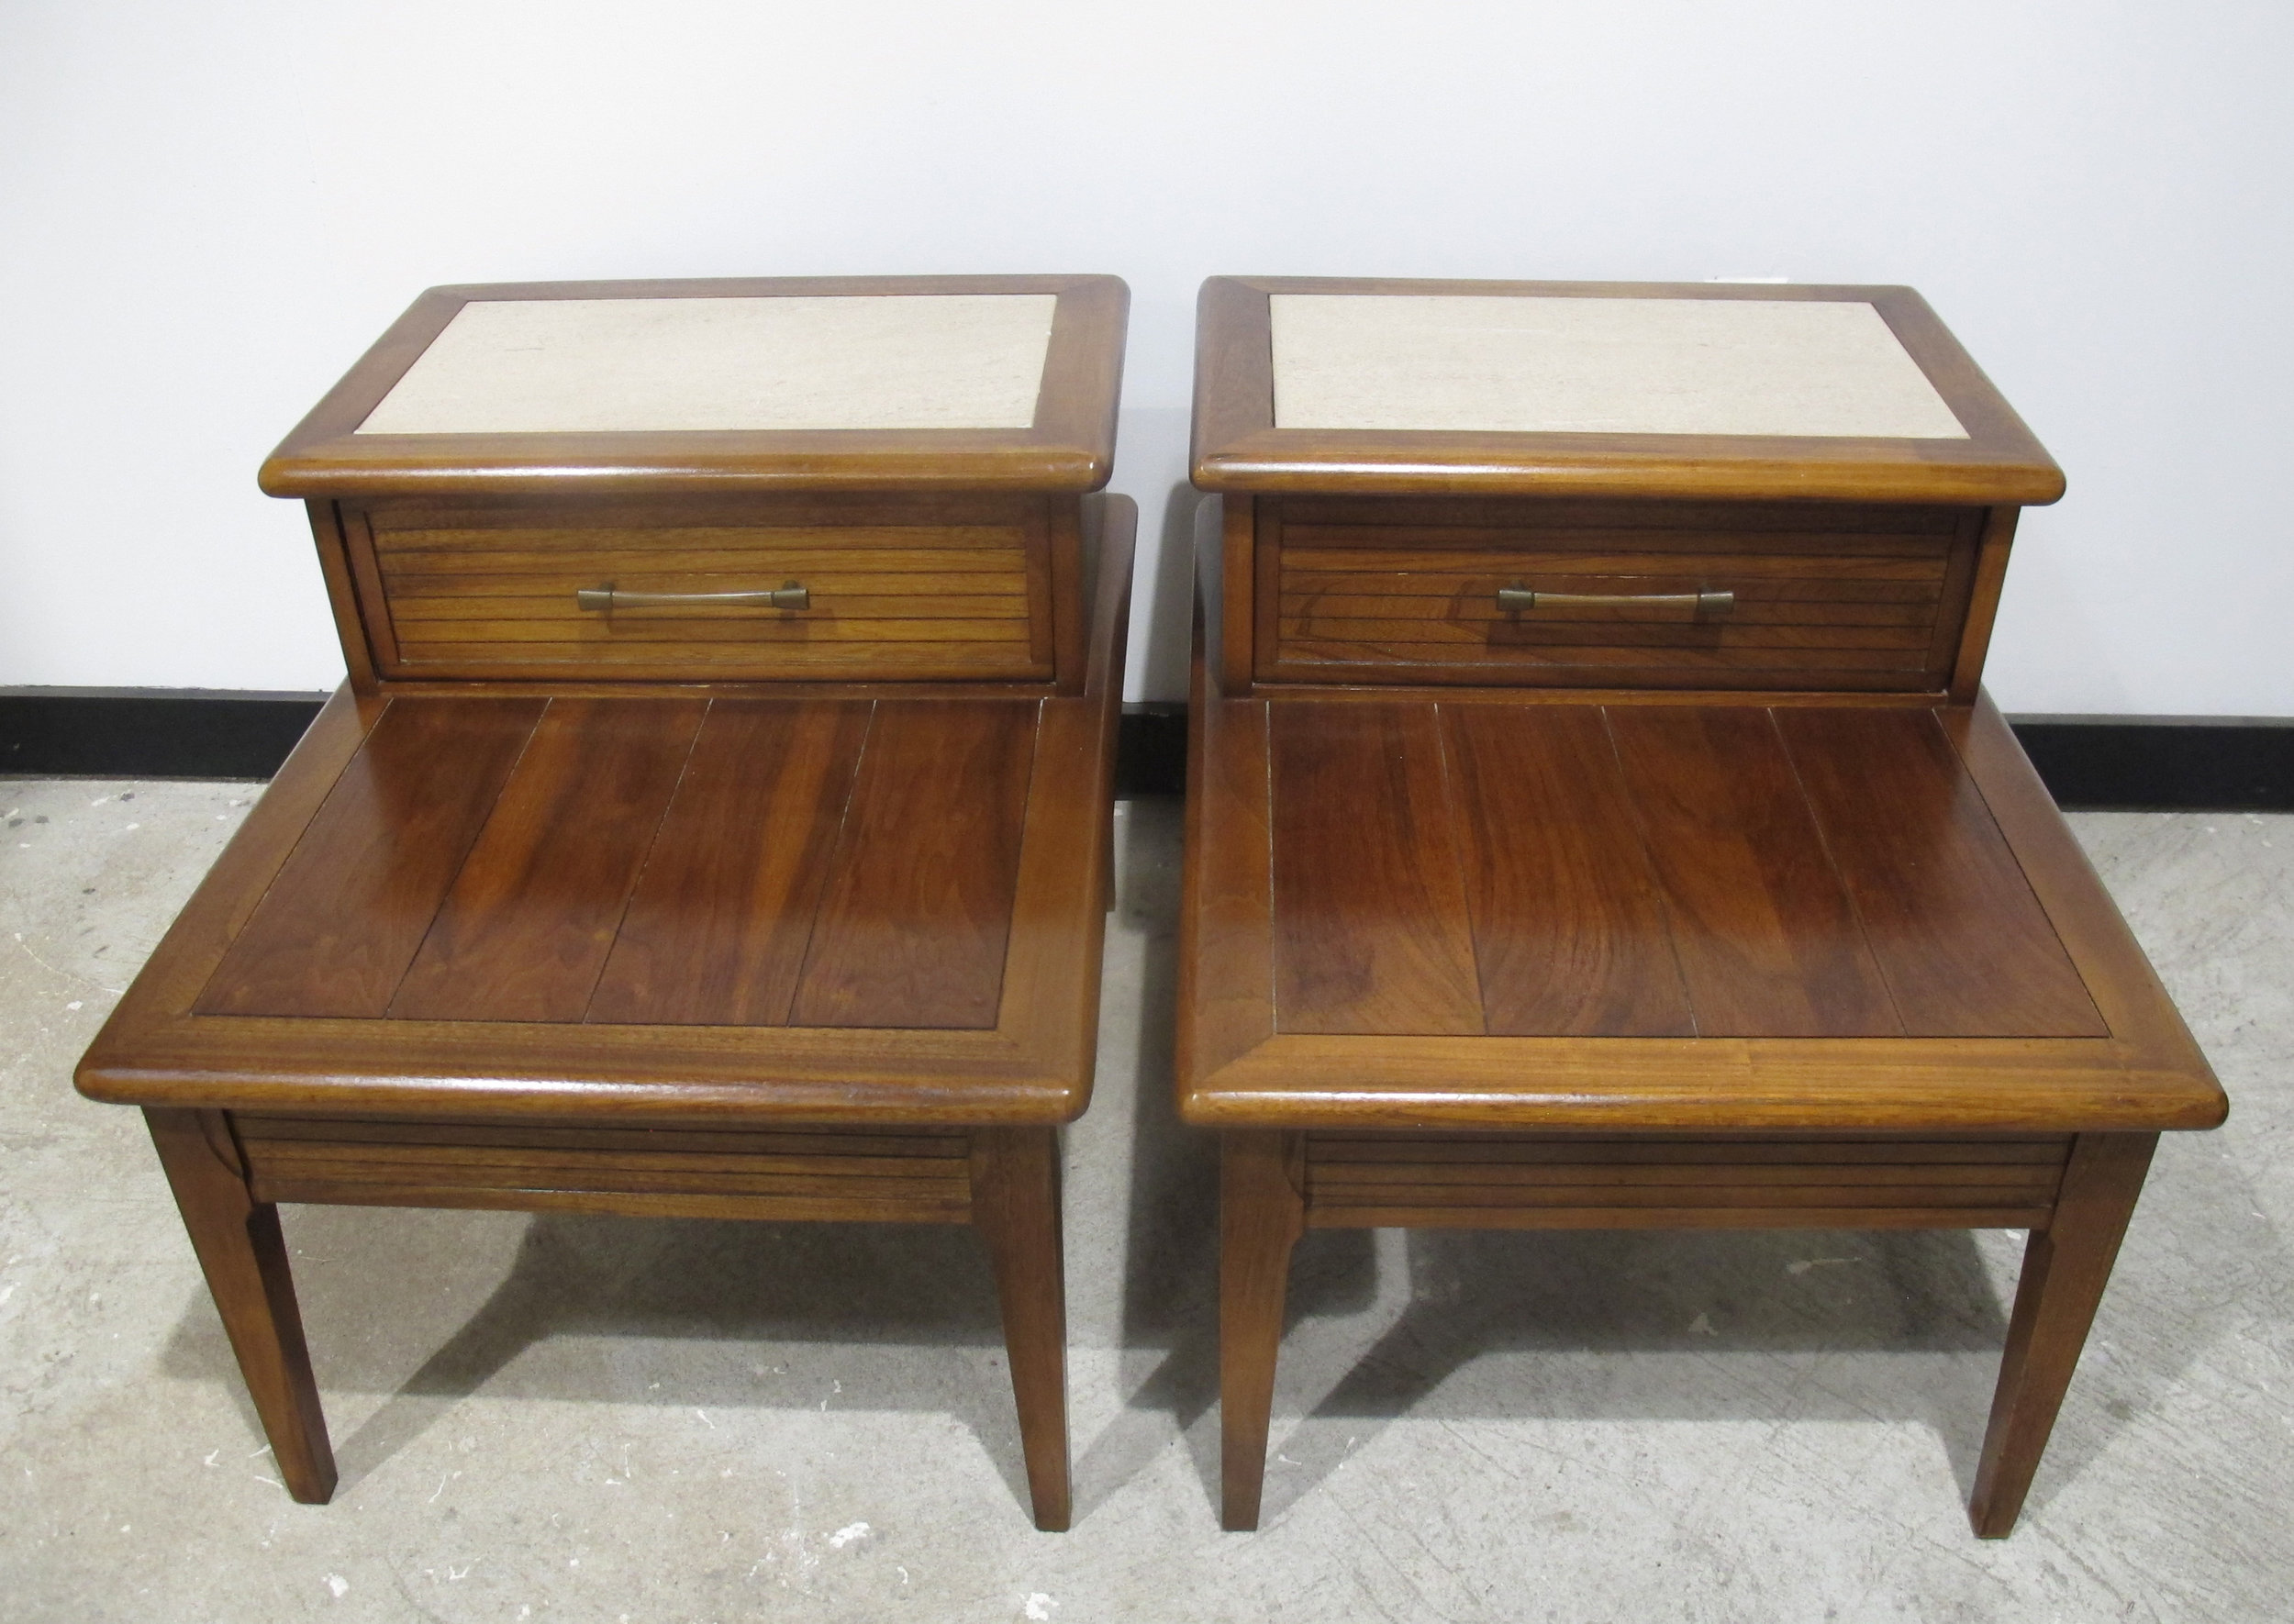 PAIR OF MID CENTURY TRAVERTINE TOP & WALNUT STEP END TABLES